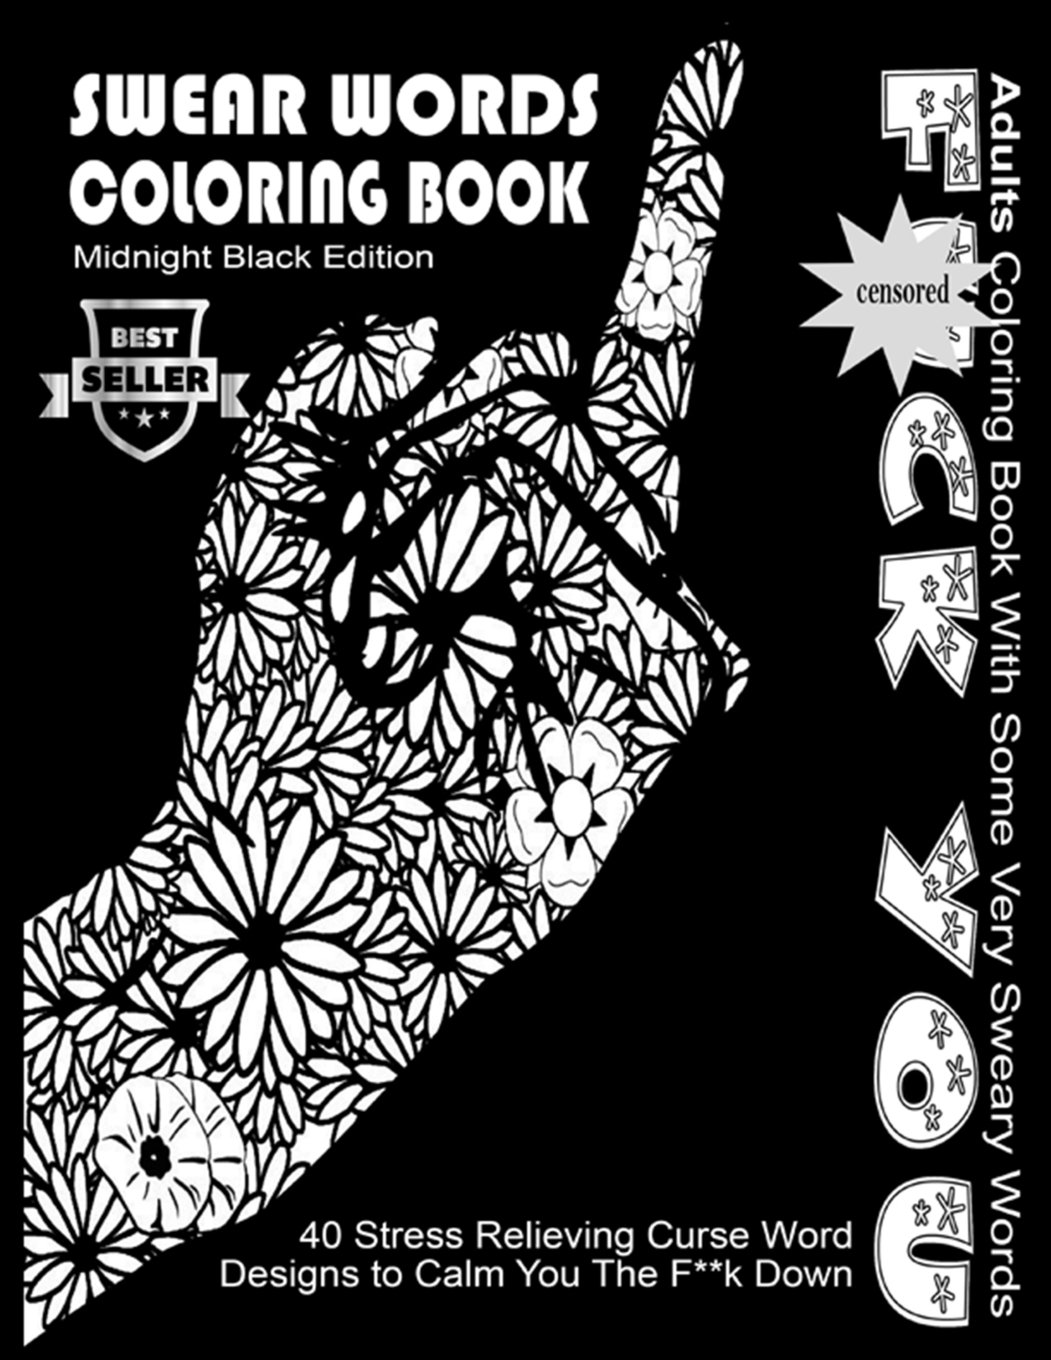 Amazon Com Swear Word Coloring Book Midnight Black Edition Best